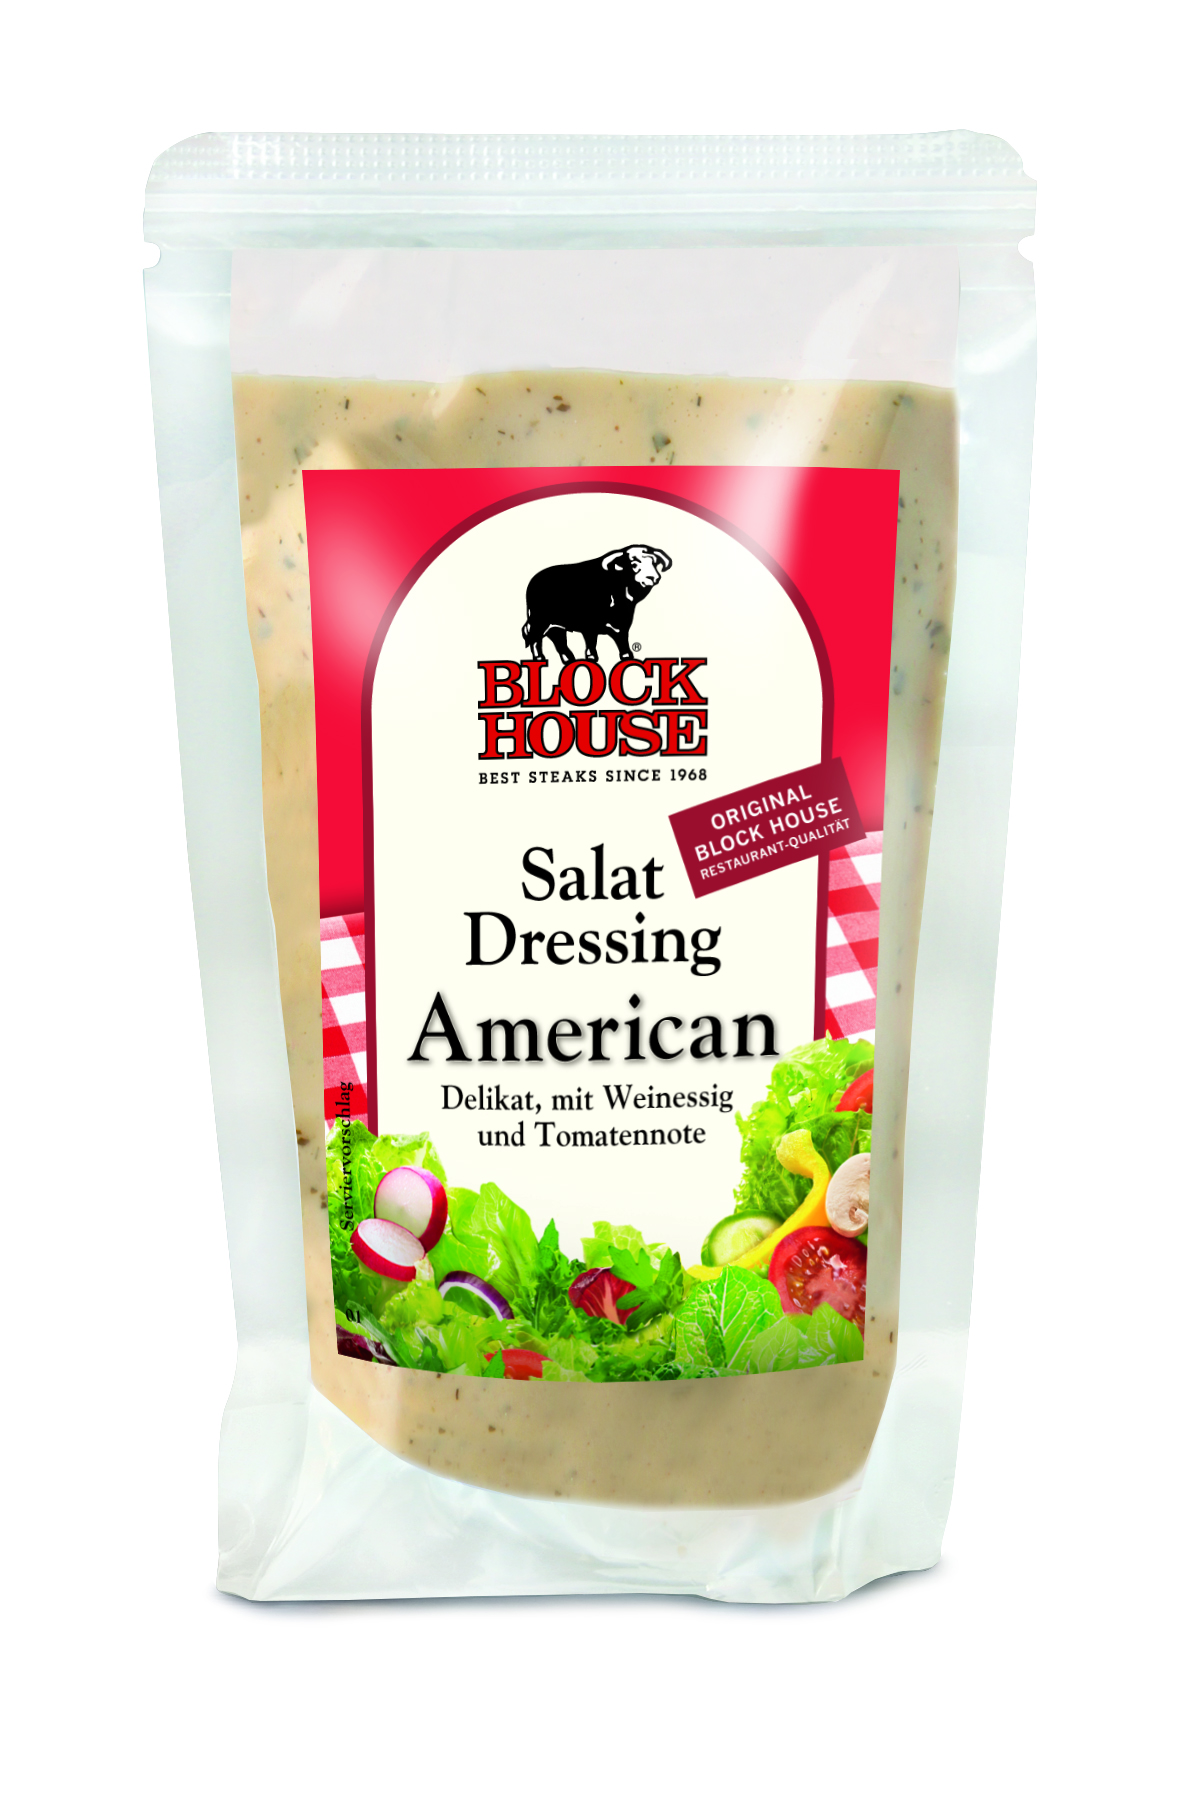 Block House Salat Dressing American, Folienbeut...